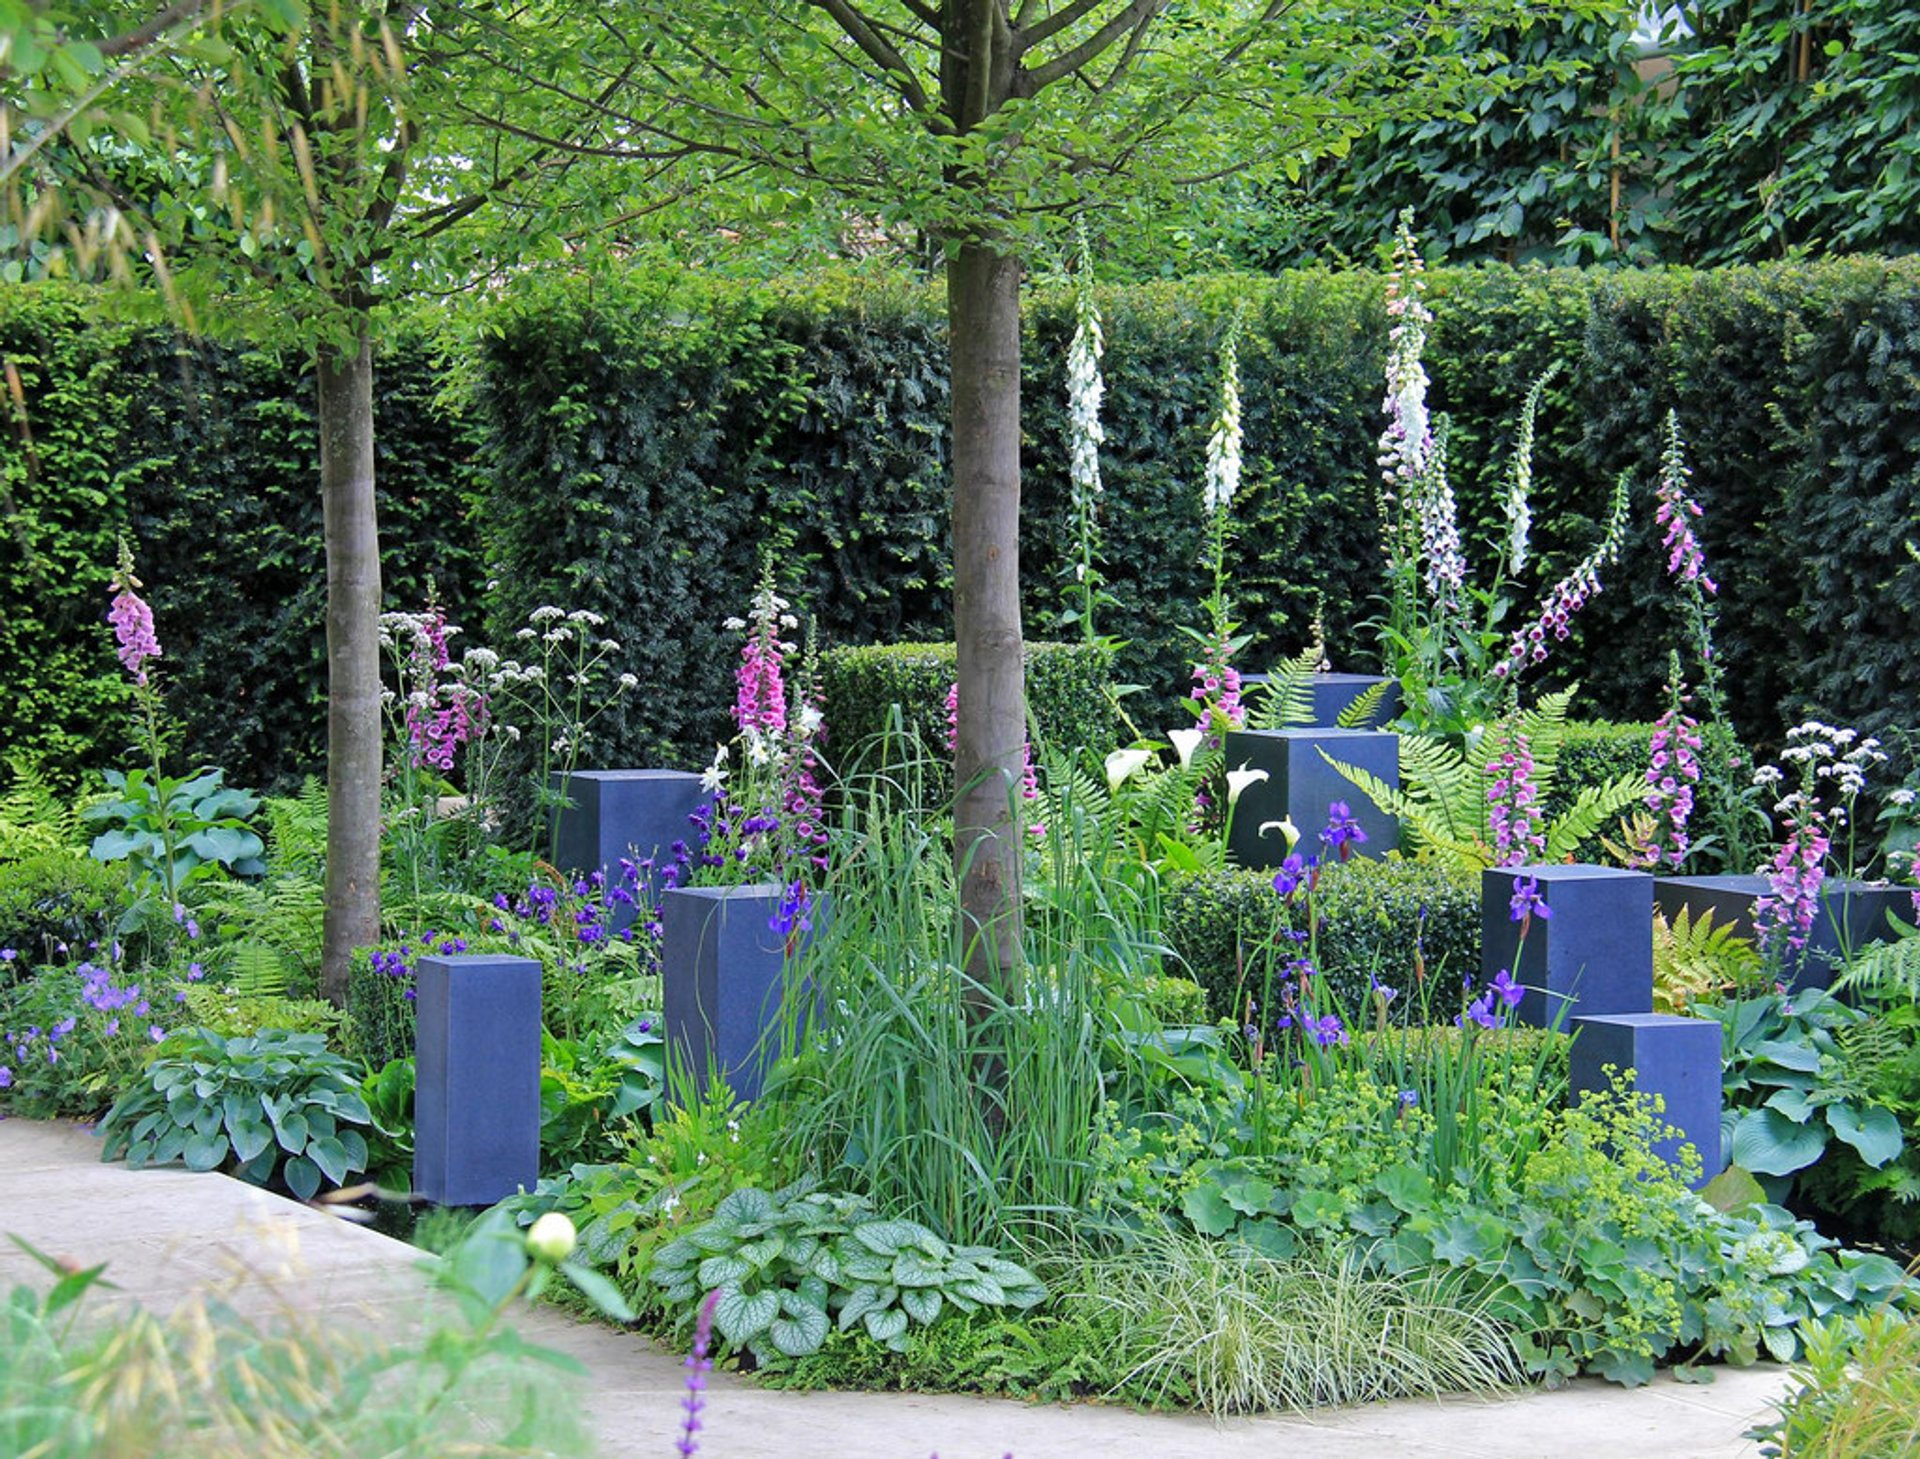 Best time to see RHS Chelsea Flower Show 2020